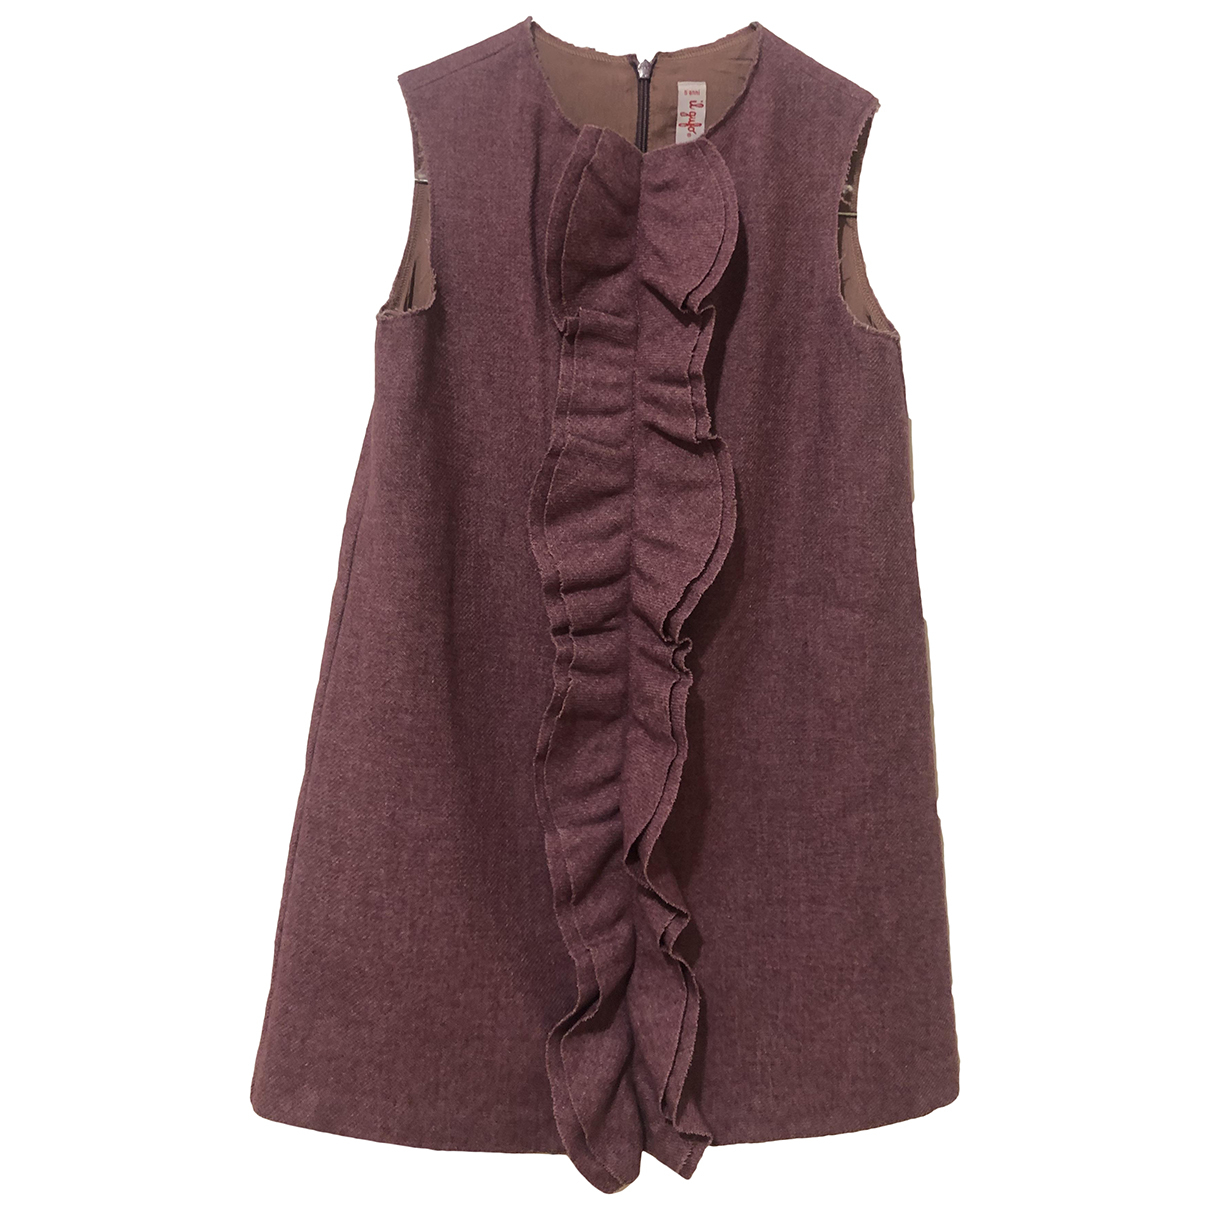 Il Gufo N Wool dress for Kids 6 years - until 45 inches UK